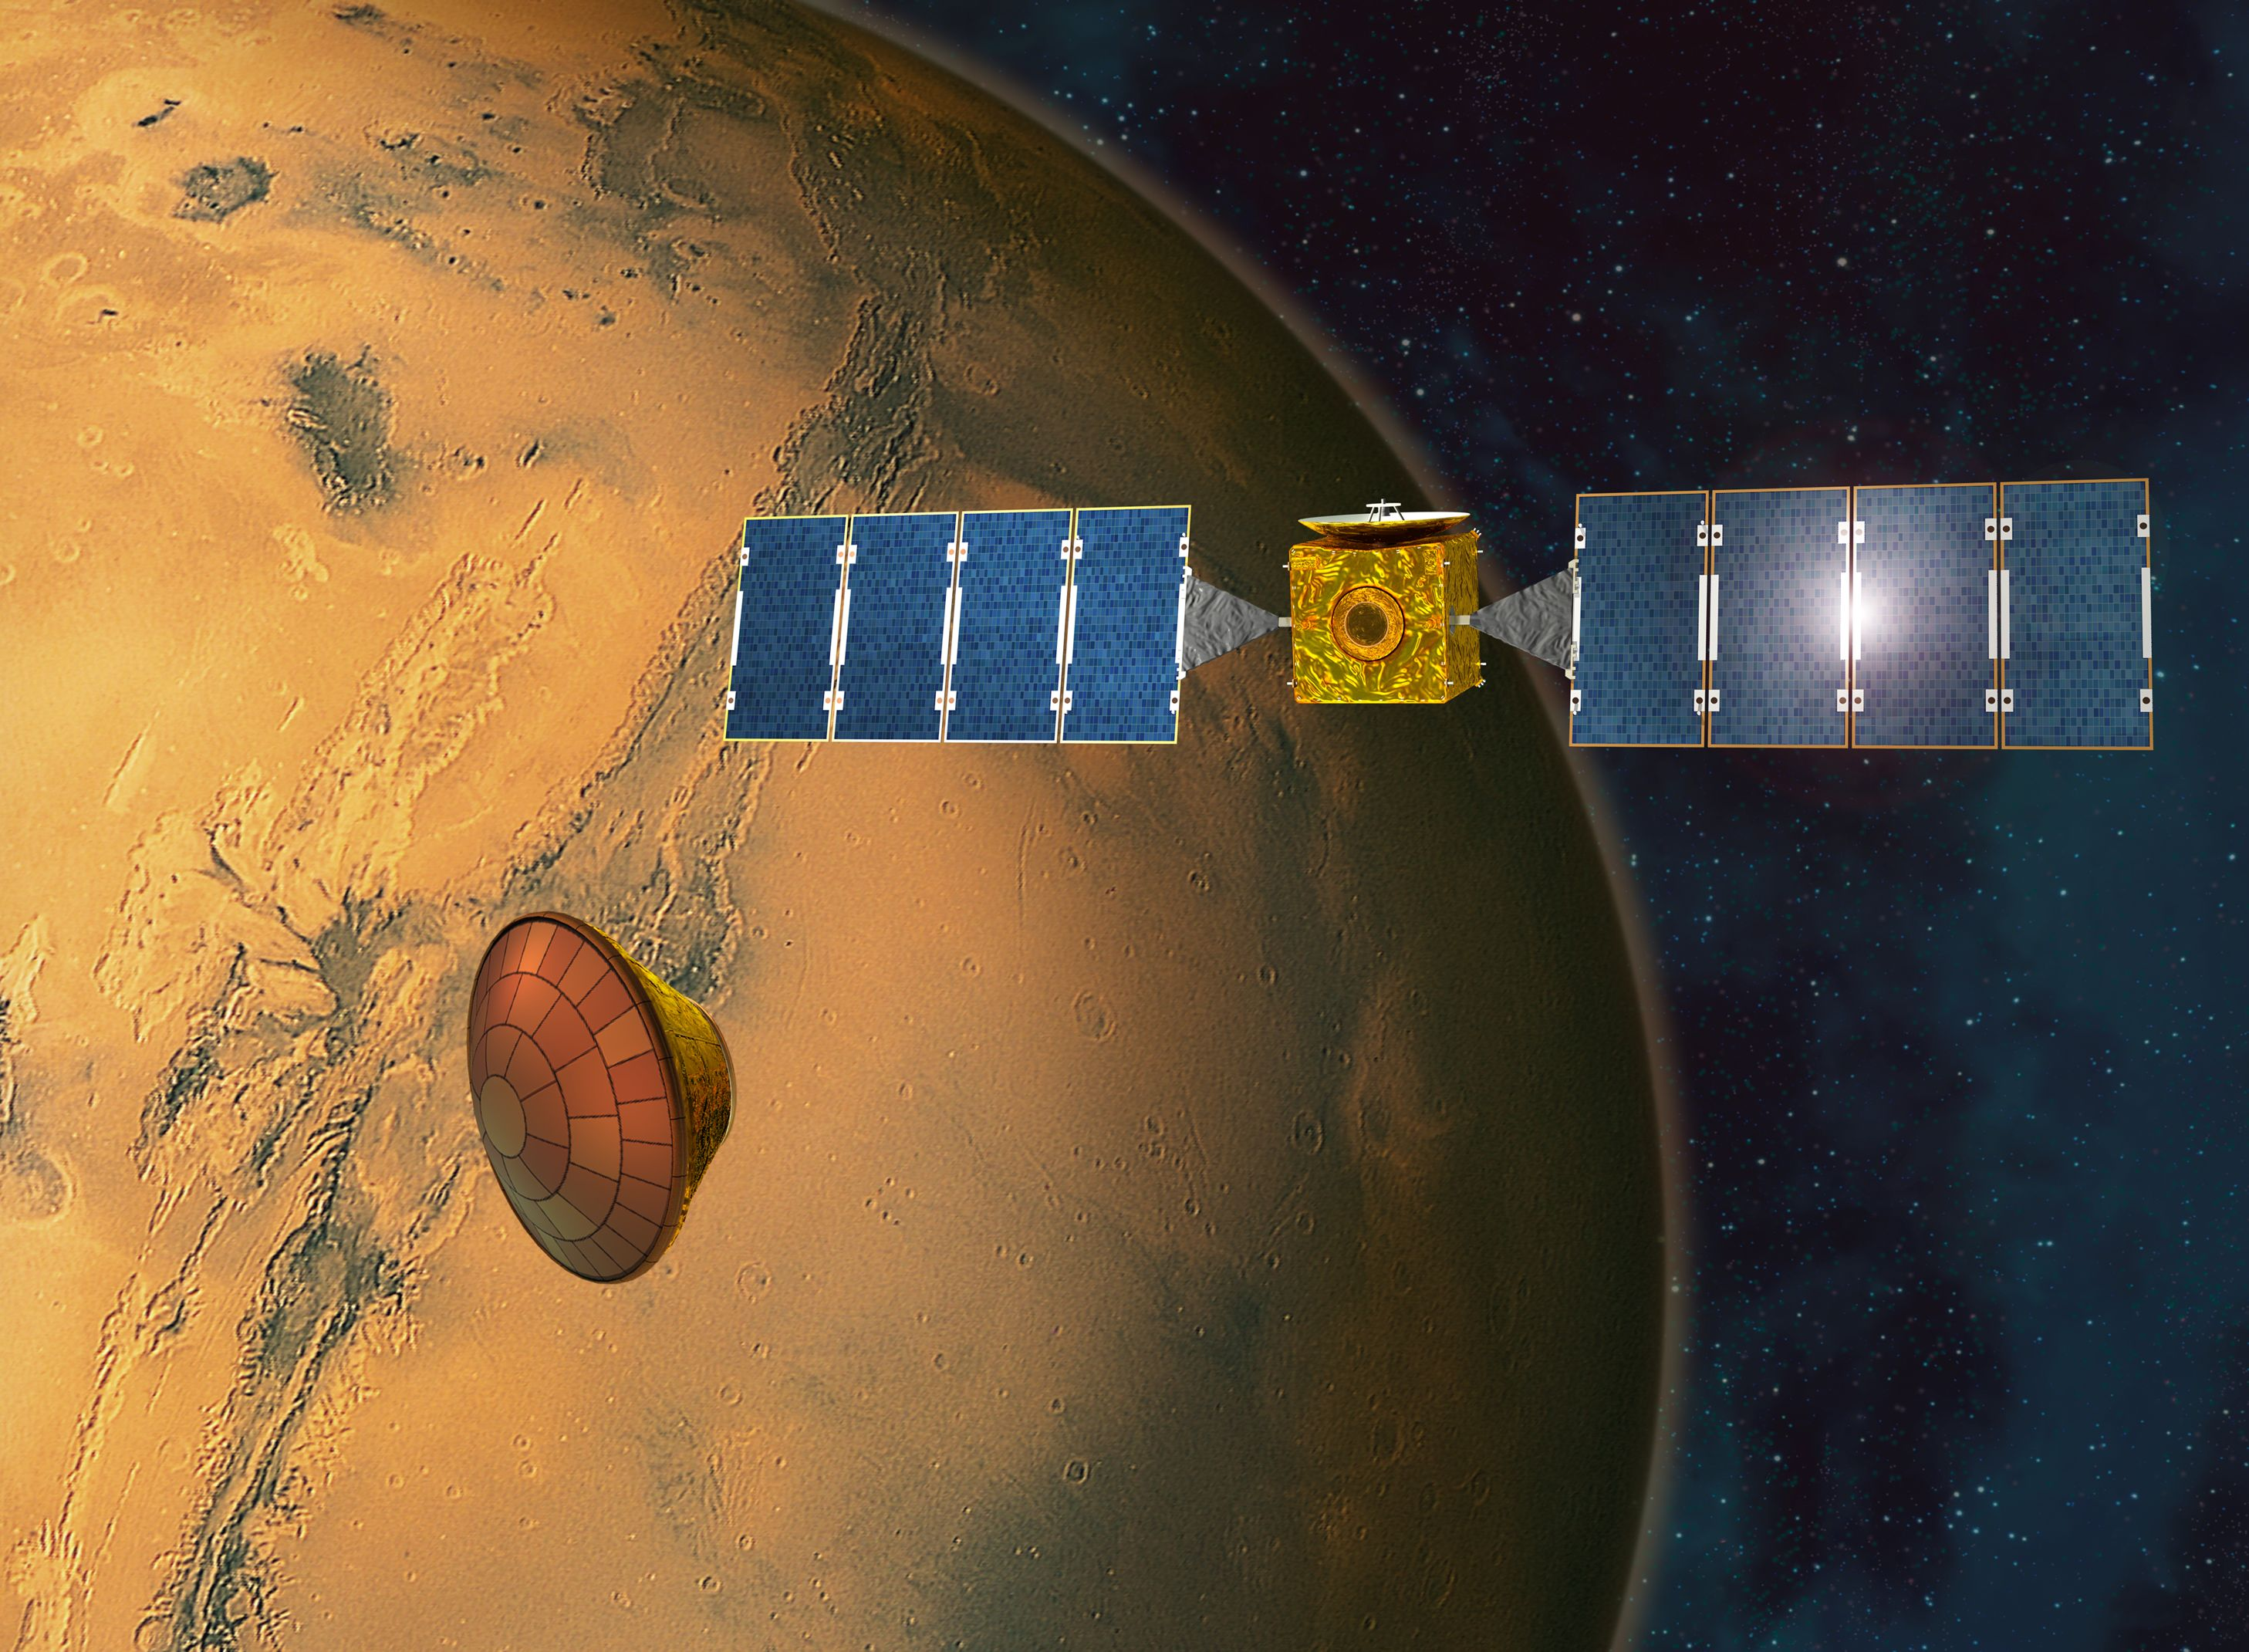 esa science amp technology mars express - HD 2915×2141